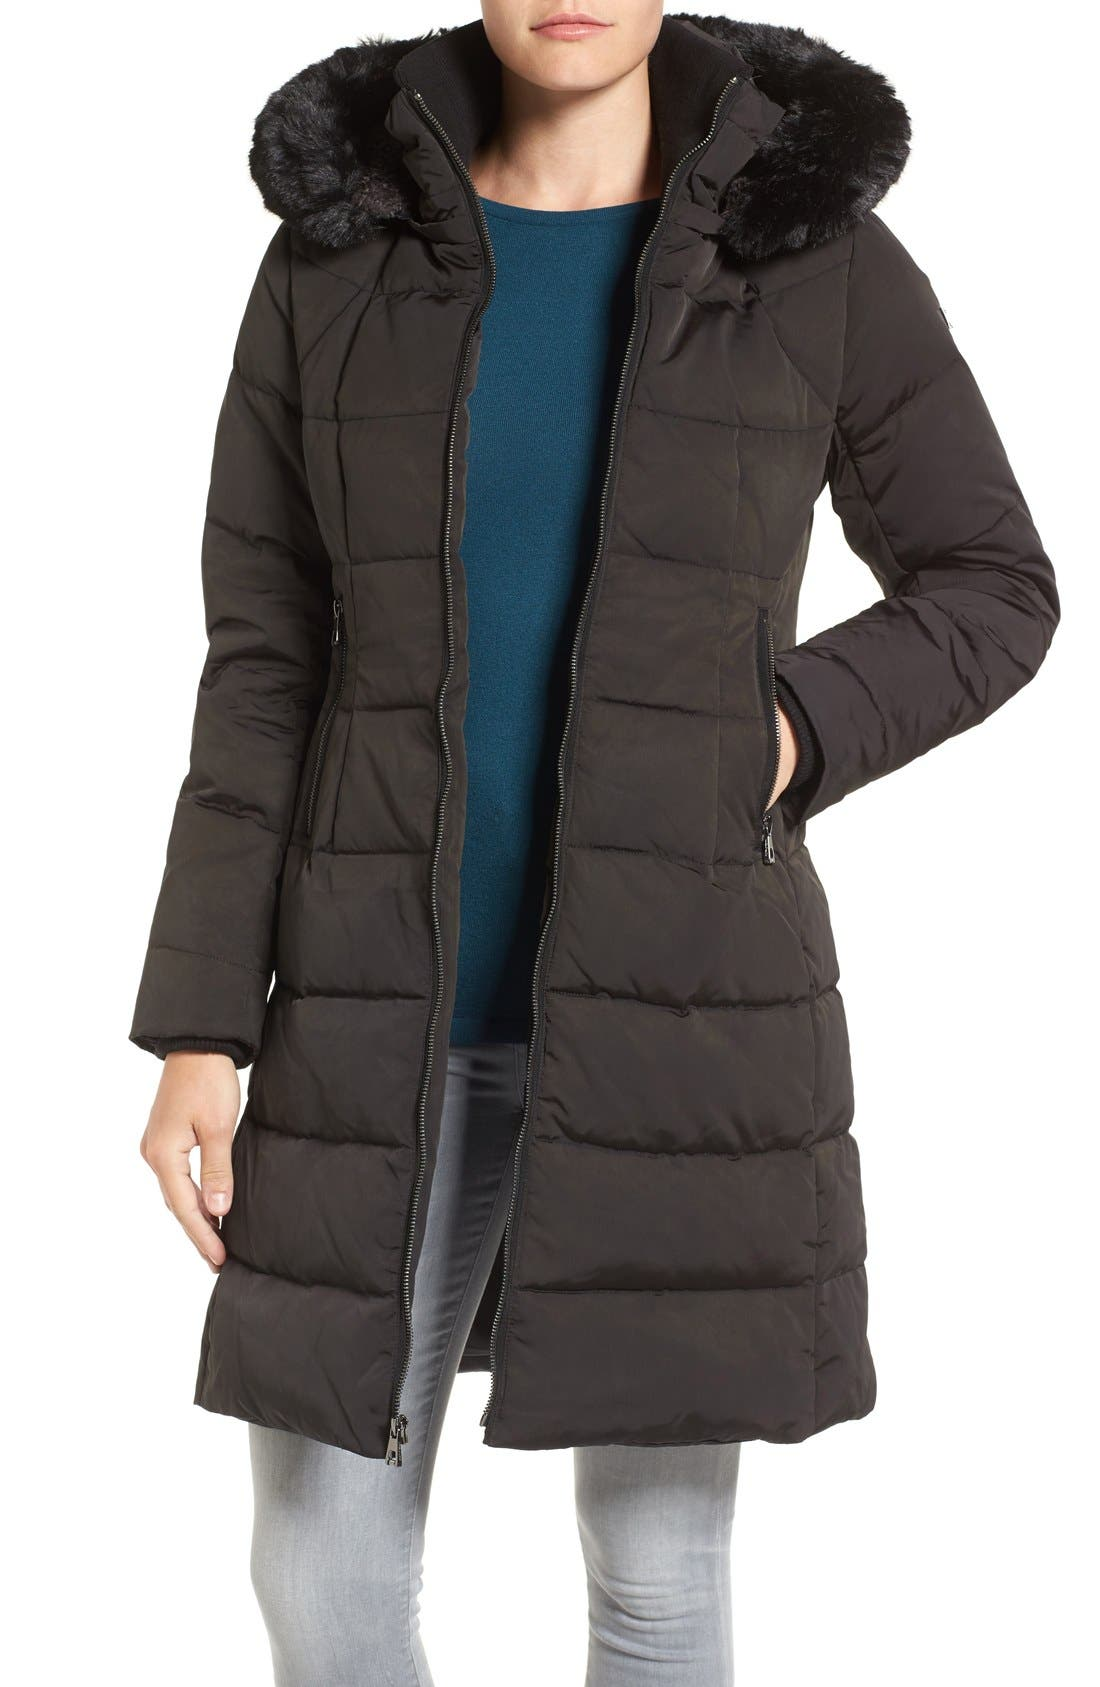 Alternate Image 1 Selected - Vince Camuto Down & Feather Fill Coat with Faux Fur Trim Hood